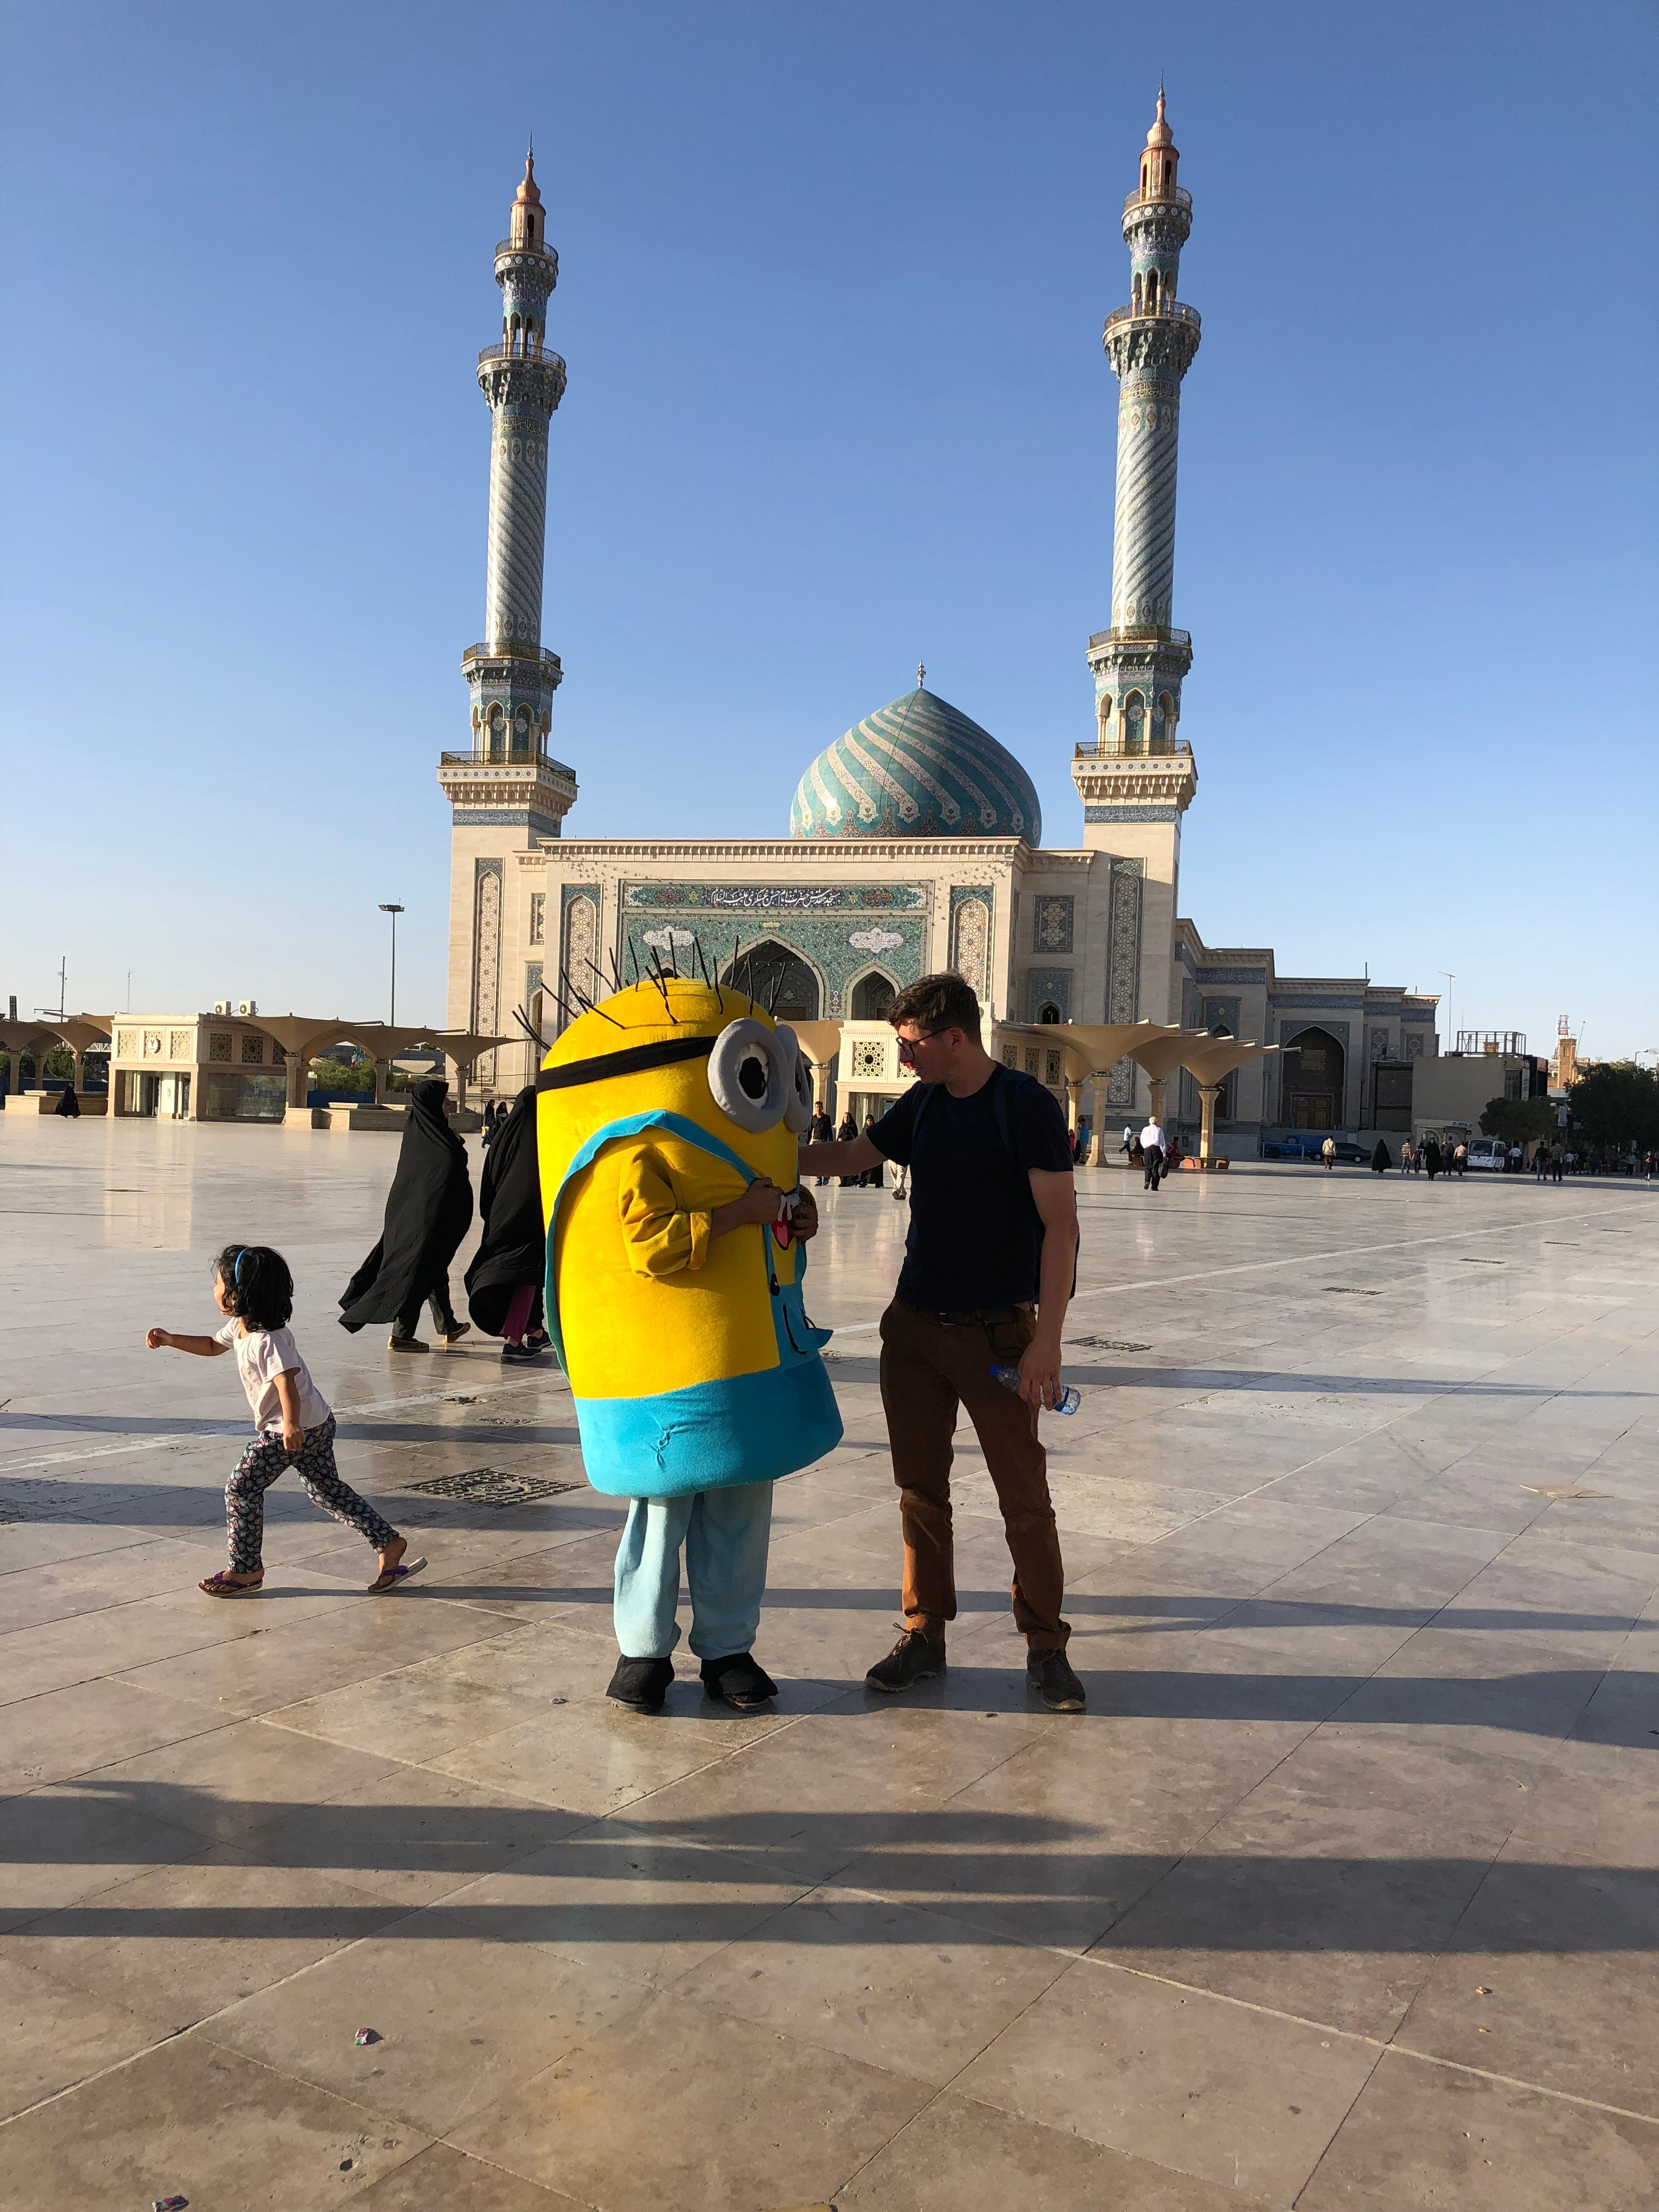 USA TODAY reporter Kim Hjelmgaard greets a child dressed in a Minion costume from the 2015 animated comedy film, in Qom, Iran, on July 12, 2018.